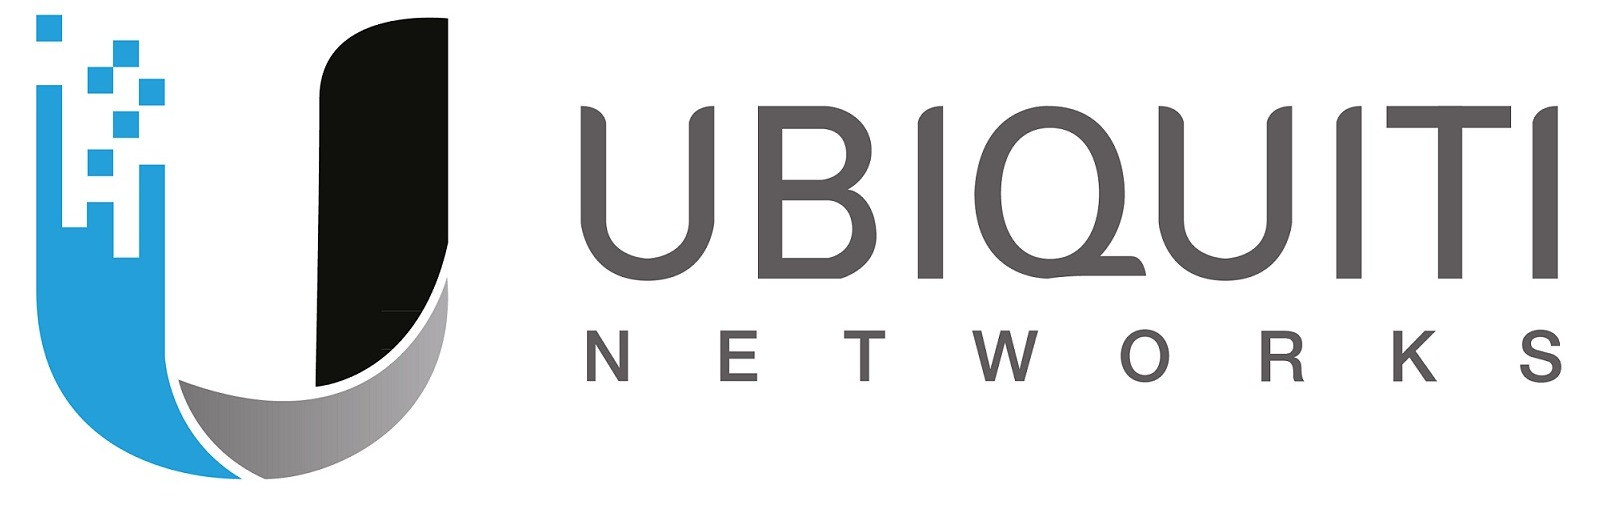 ubiquiti-networks-logo_edited.jpg